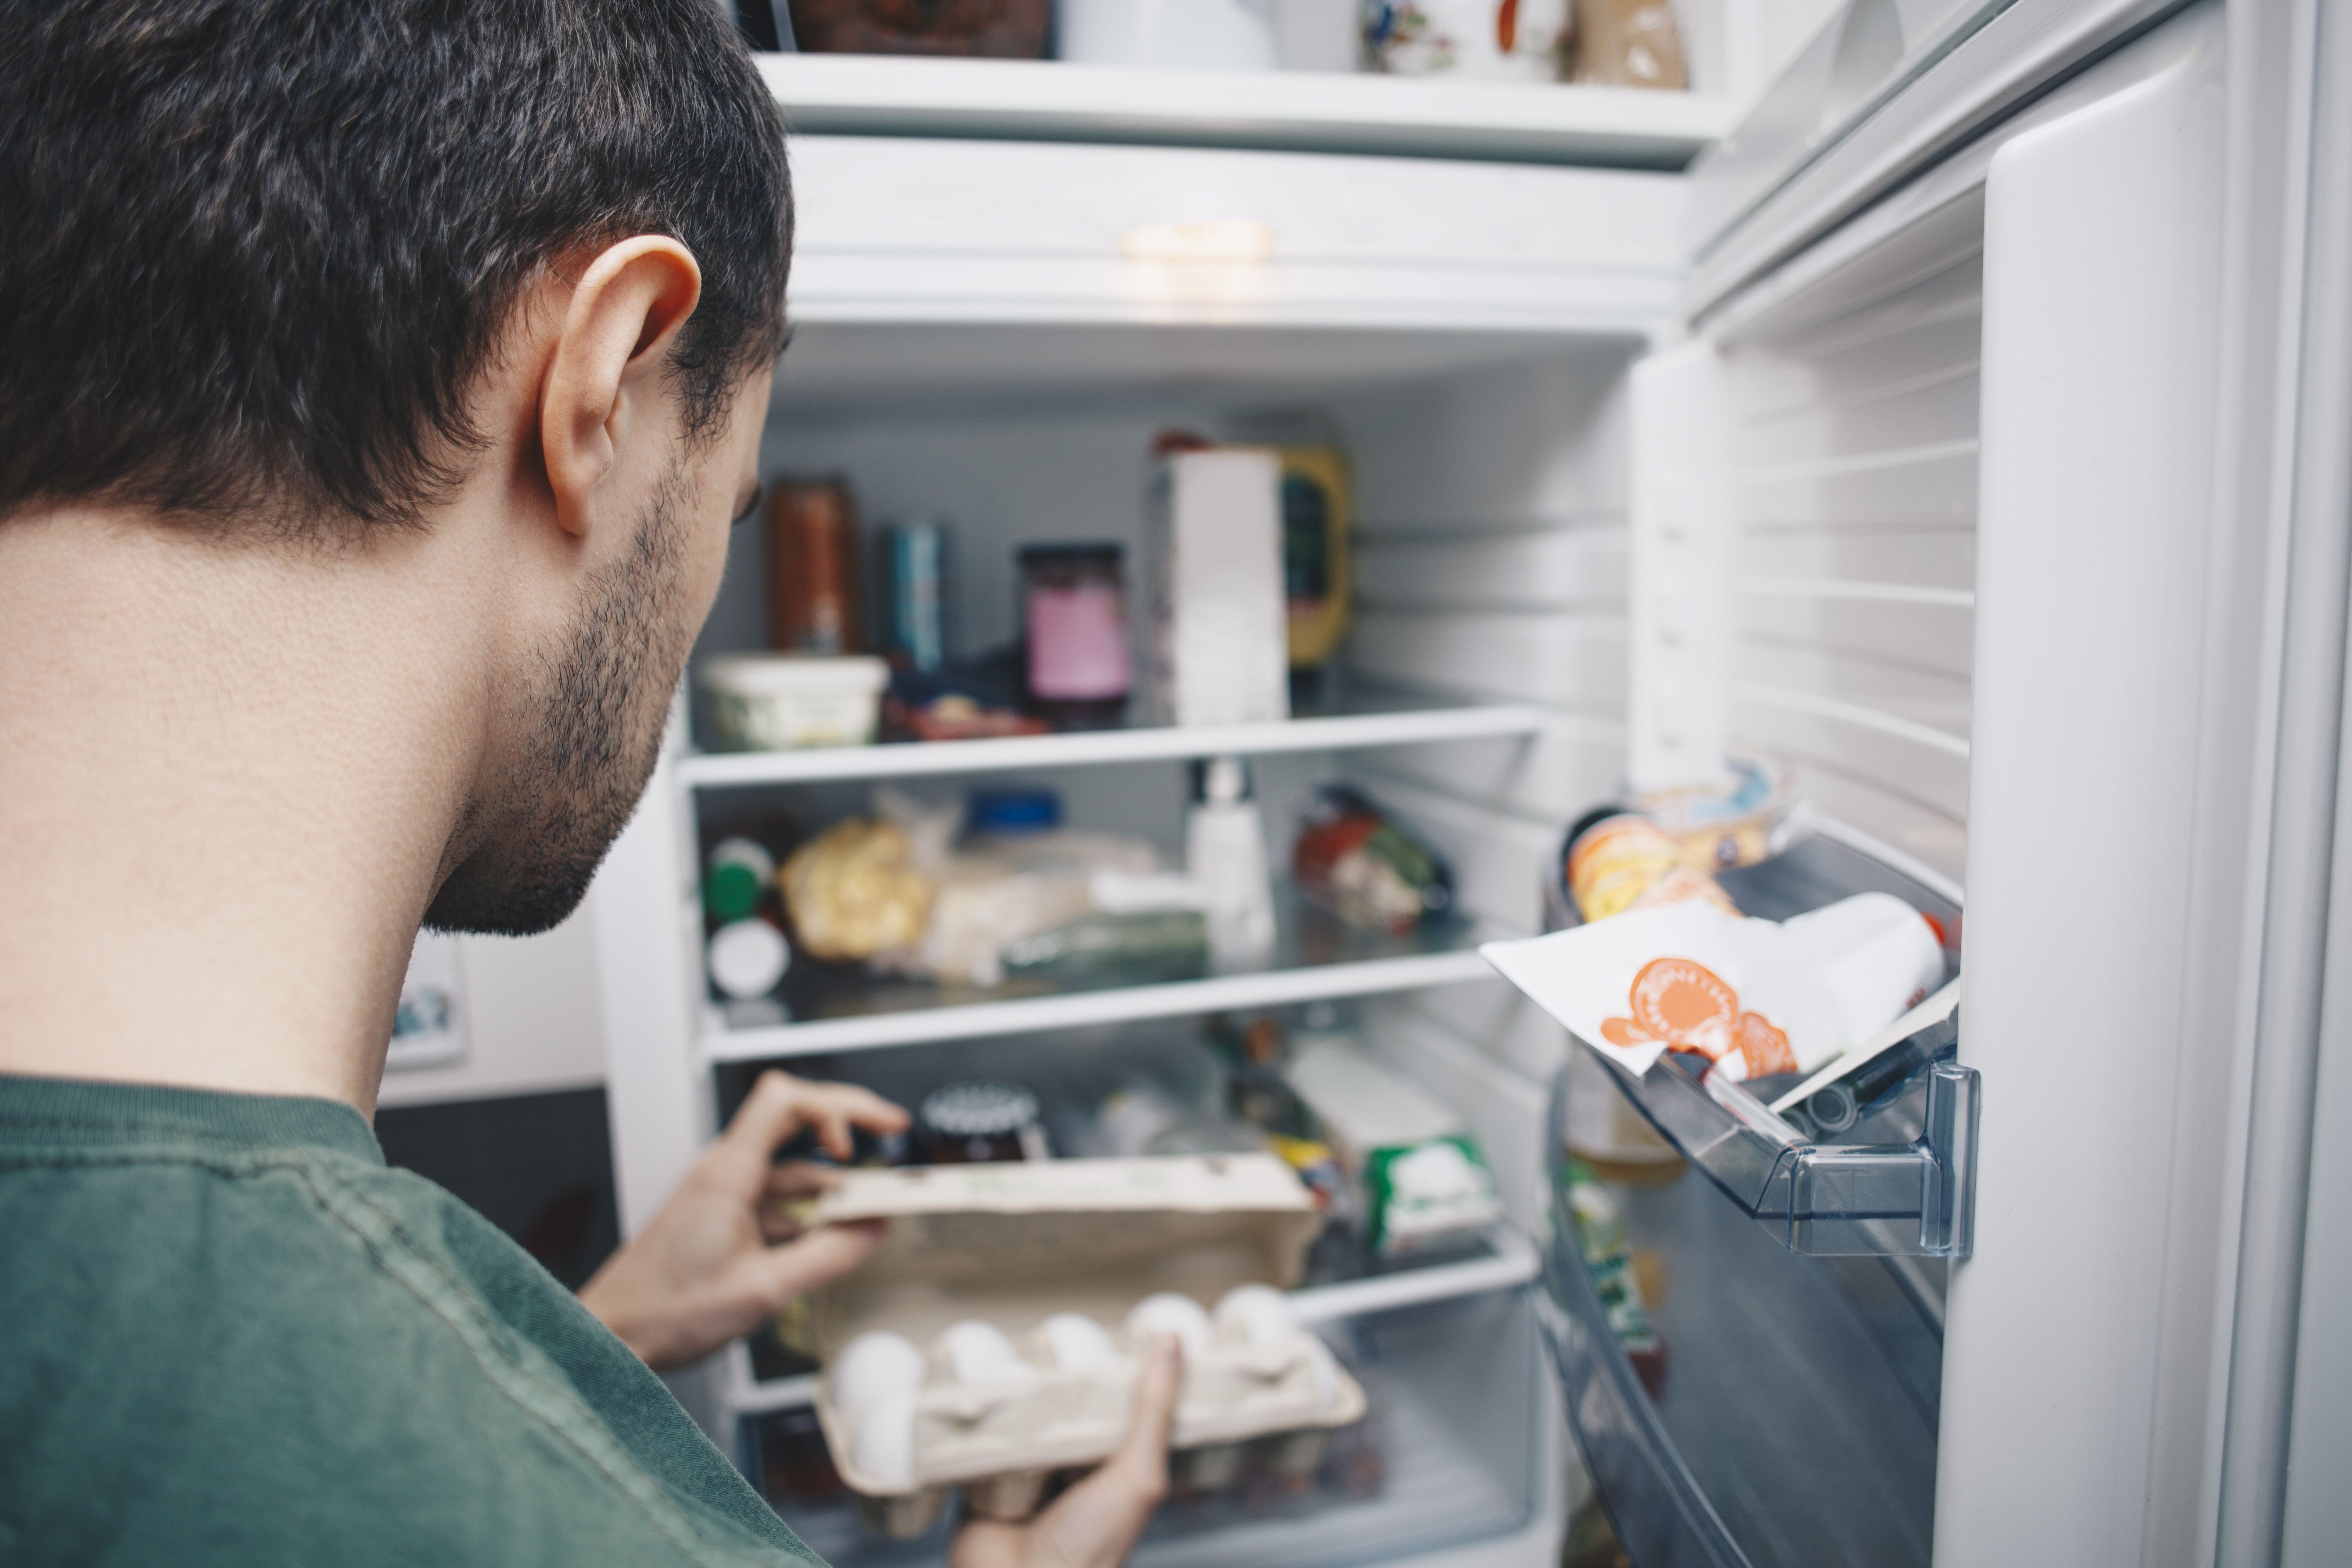 How to Troubleshoot Refrigerator Temperature Issues | Hunker